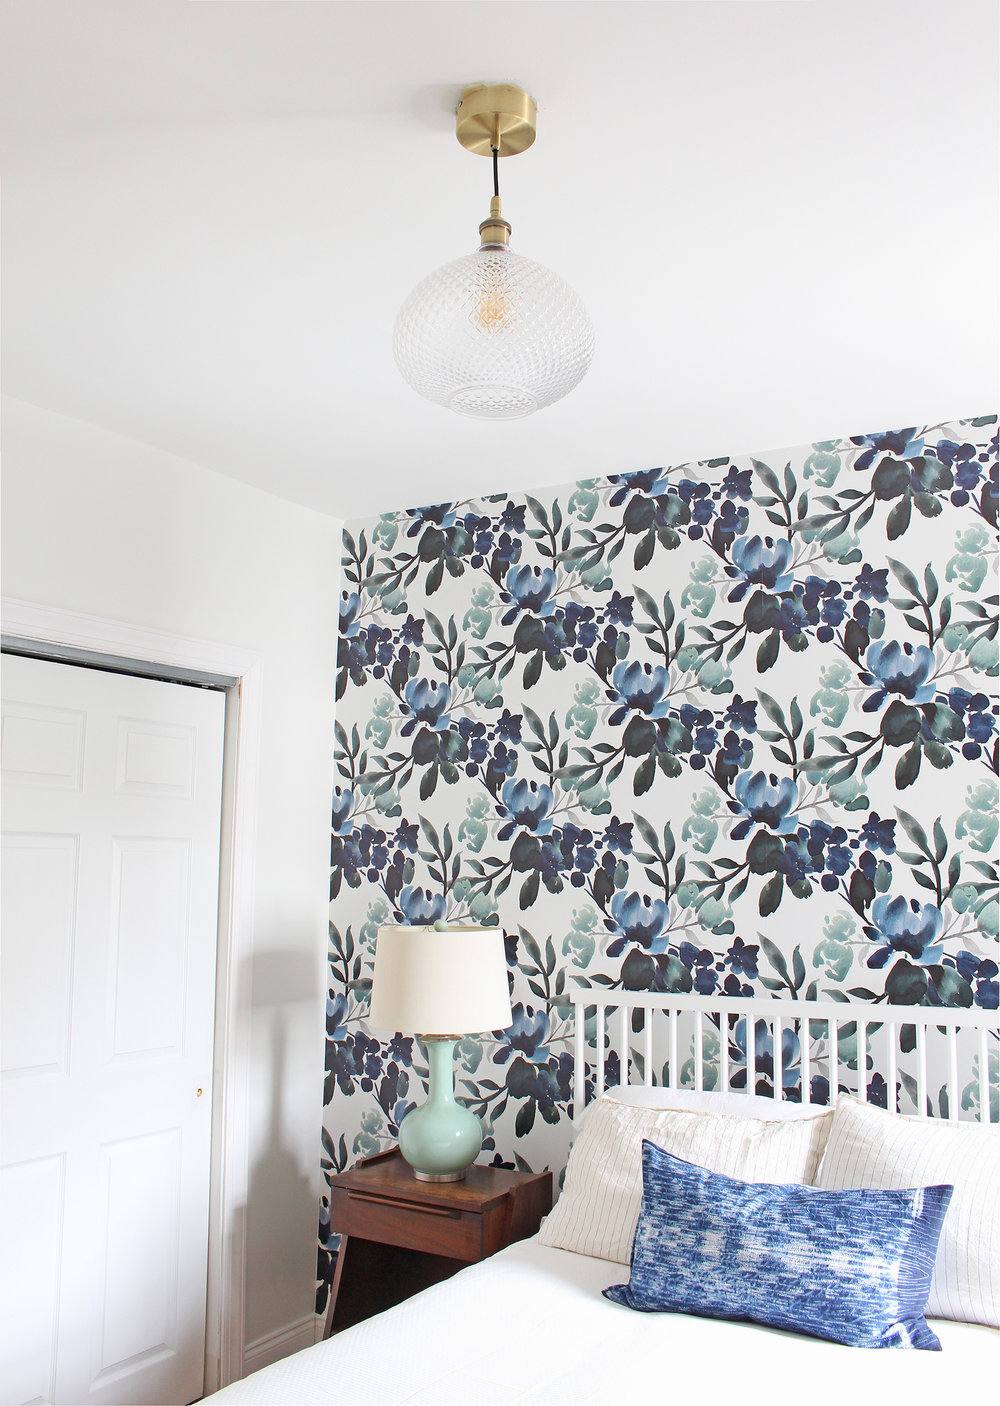 See the Week 4 One Room Challenge progress for Mix & Match Design Company's guest bedroom! This week, it's all about the window treatments (layering a natural woven shade with a DIY'd curtain) and a new pendant light!